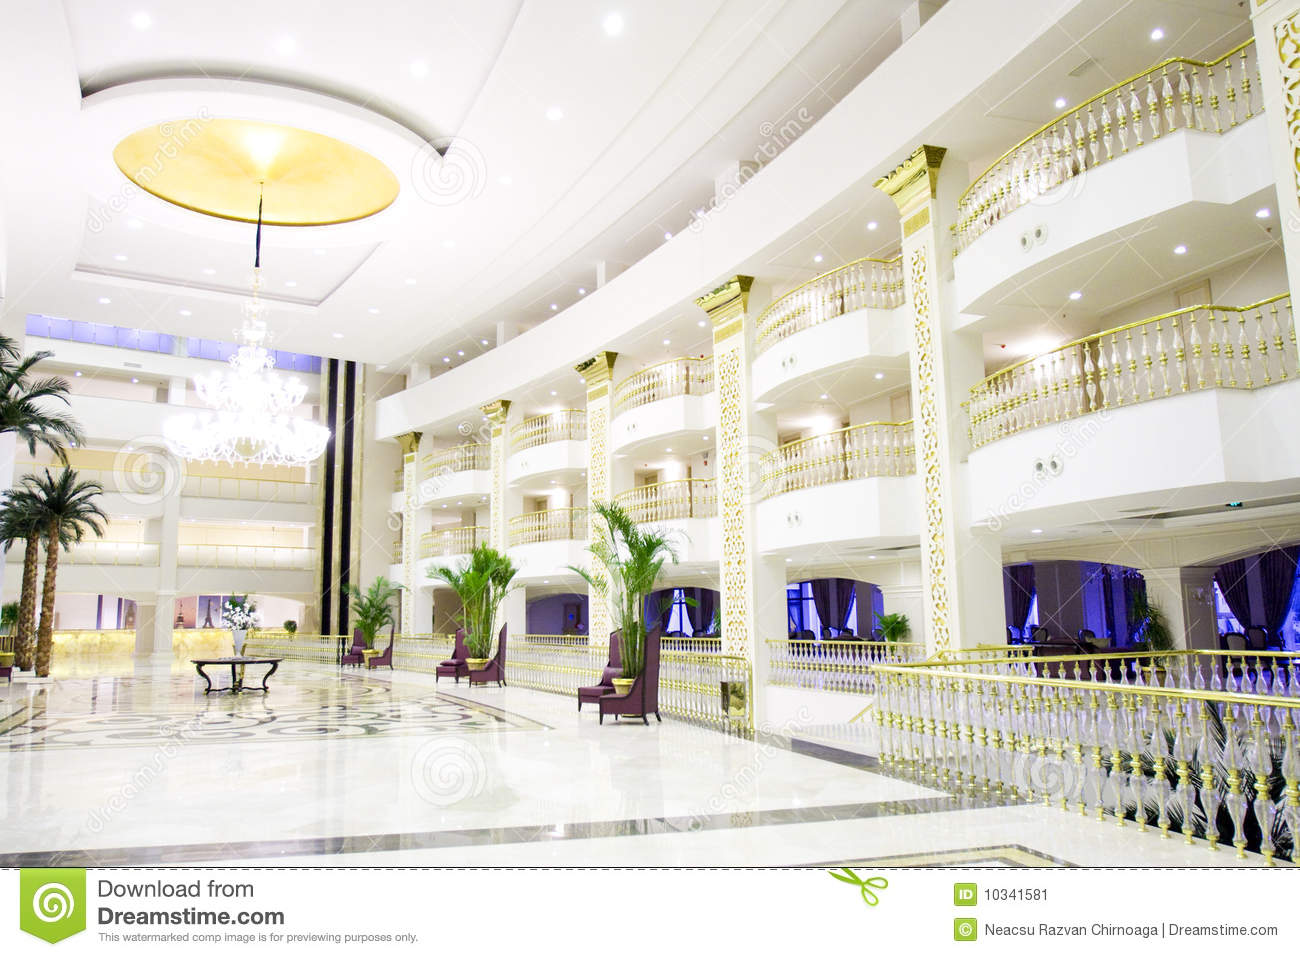 Modern hotel room interior stock photo image 18197840 - Modern Luxury Lobby Interior In Hotel Stock Image